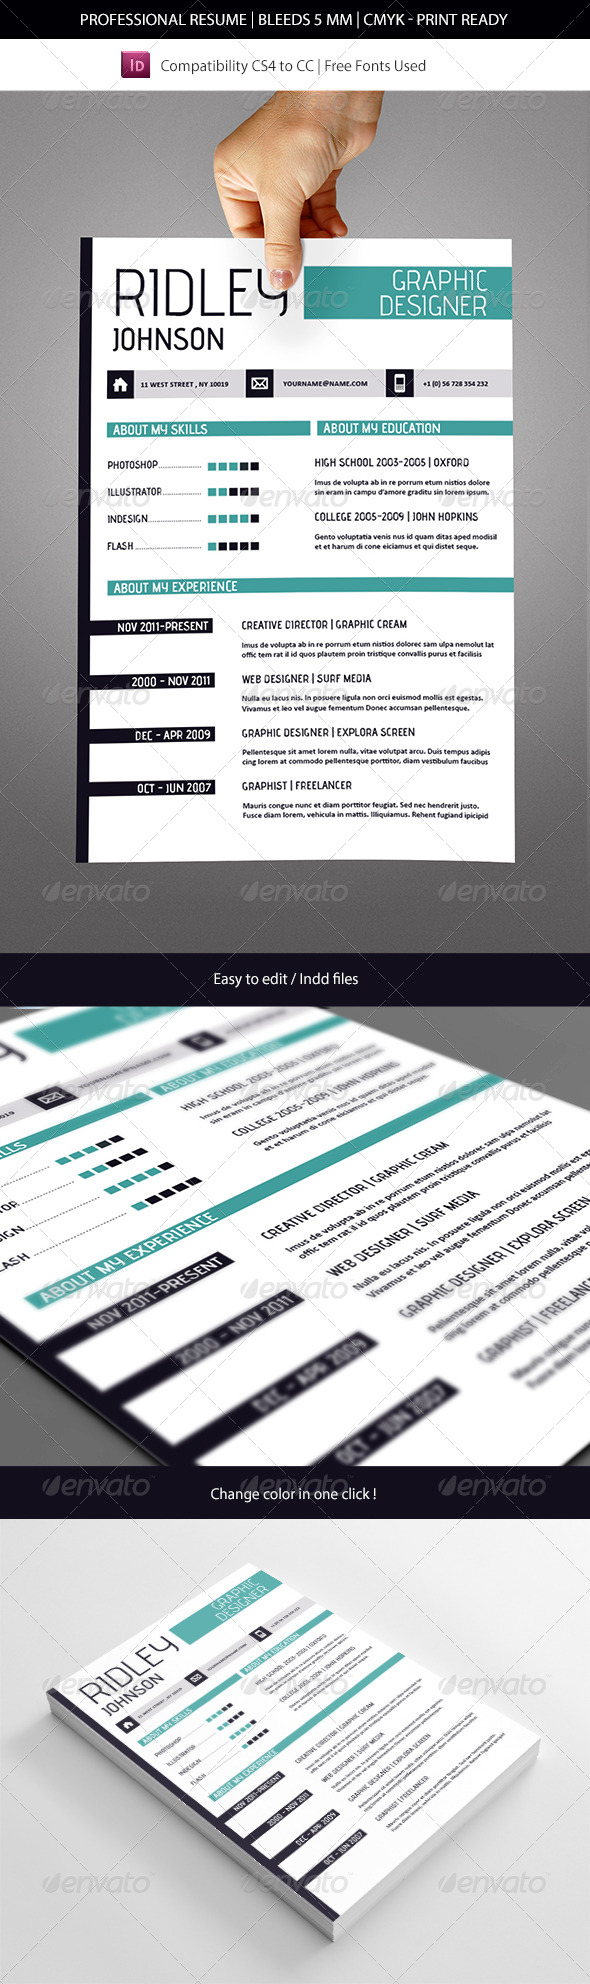 GraphicRiver Creative Indesign Resume Template 7880221